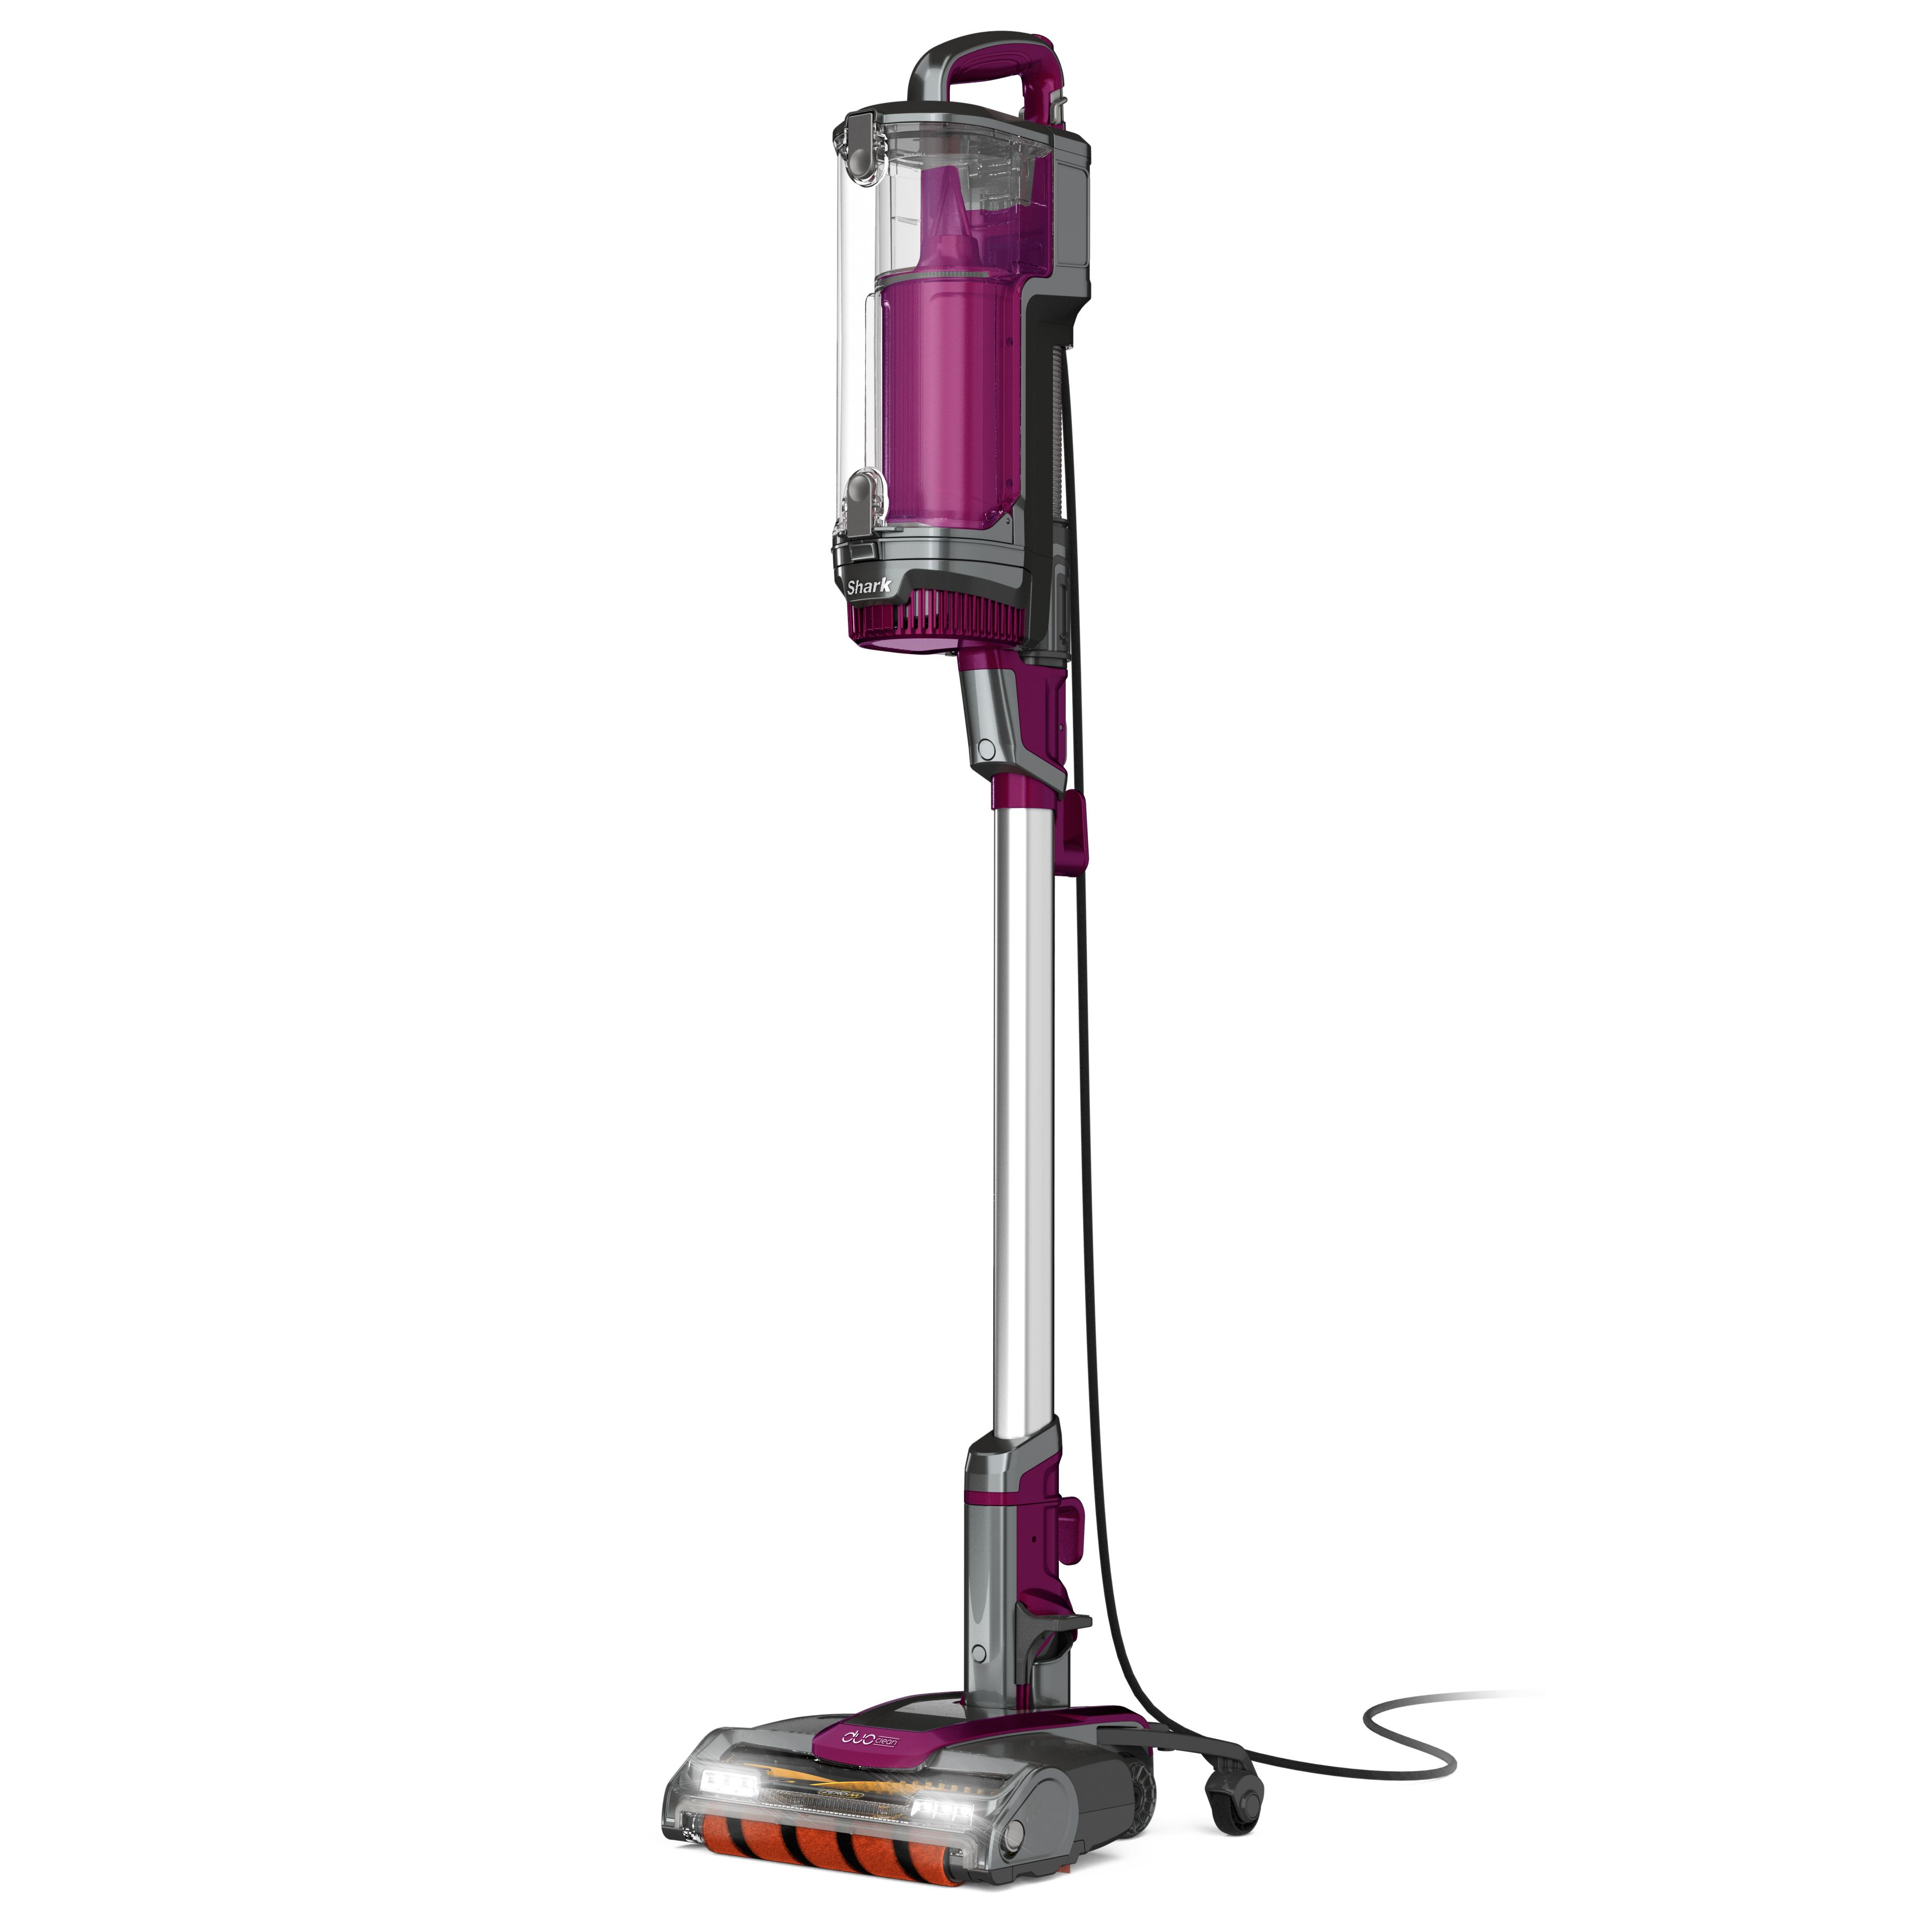 Home vacuums cleaning how to clean carpet